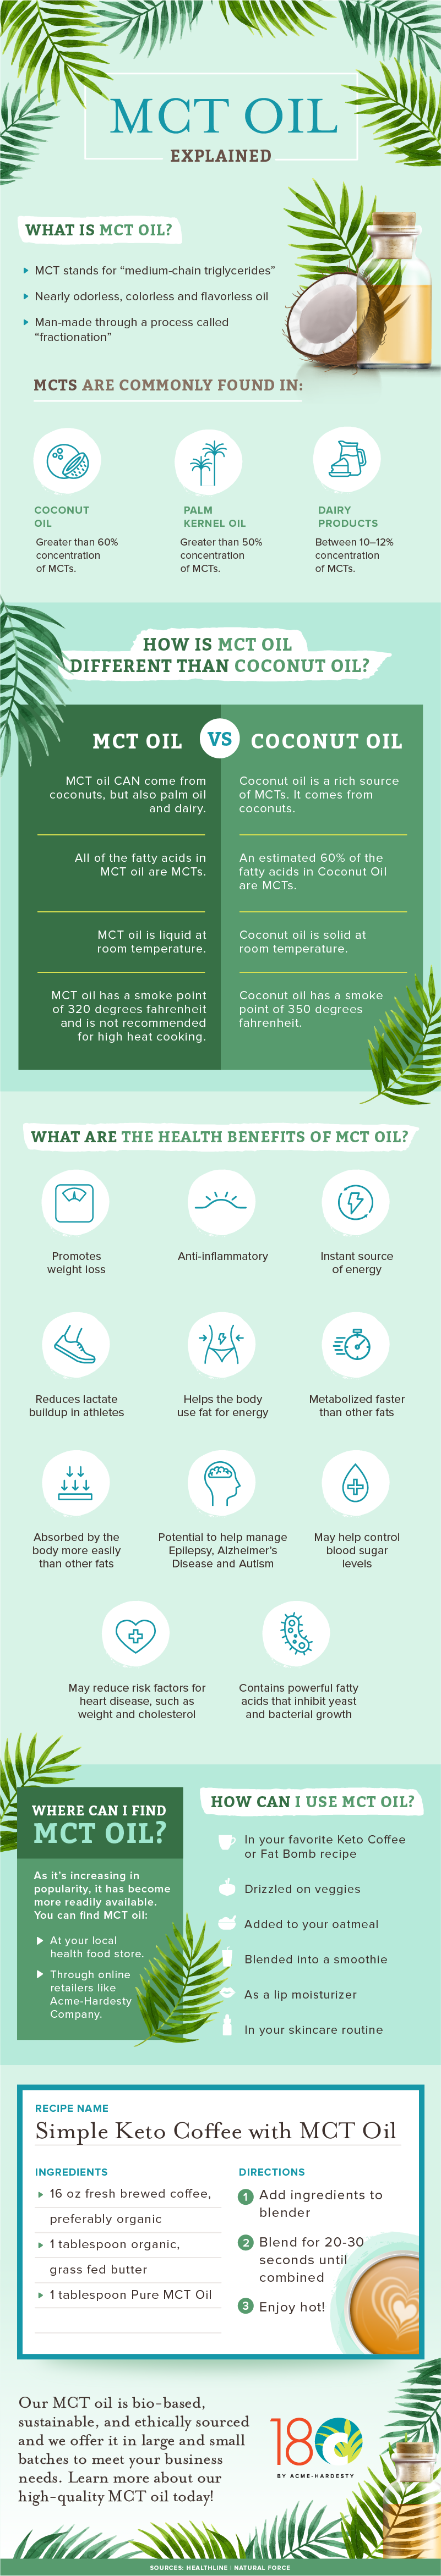 MCT Oil Explained Infographic